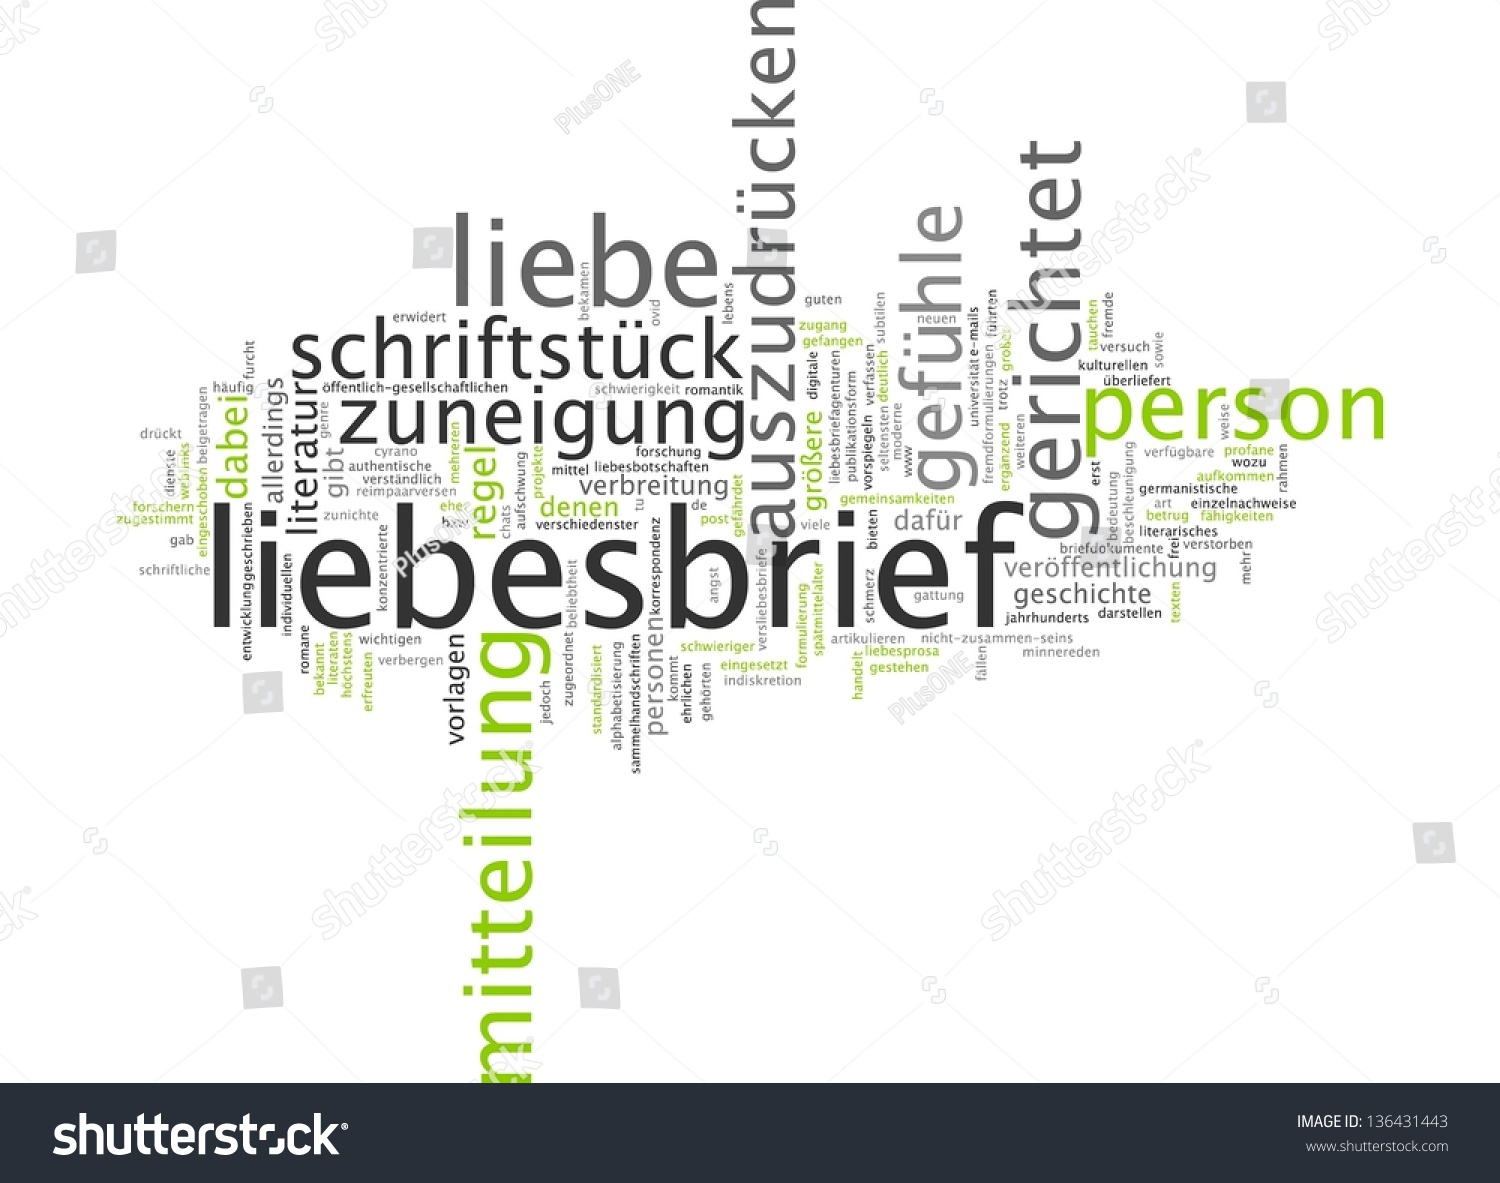 Word Cloud Love Letter Stock Illustration 136431443 - Shutterstock